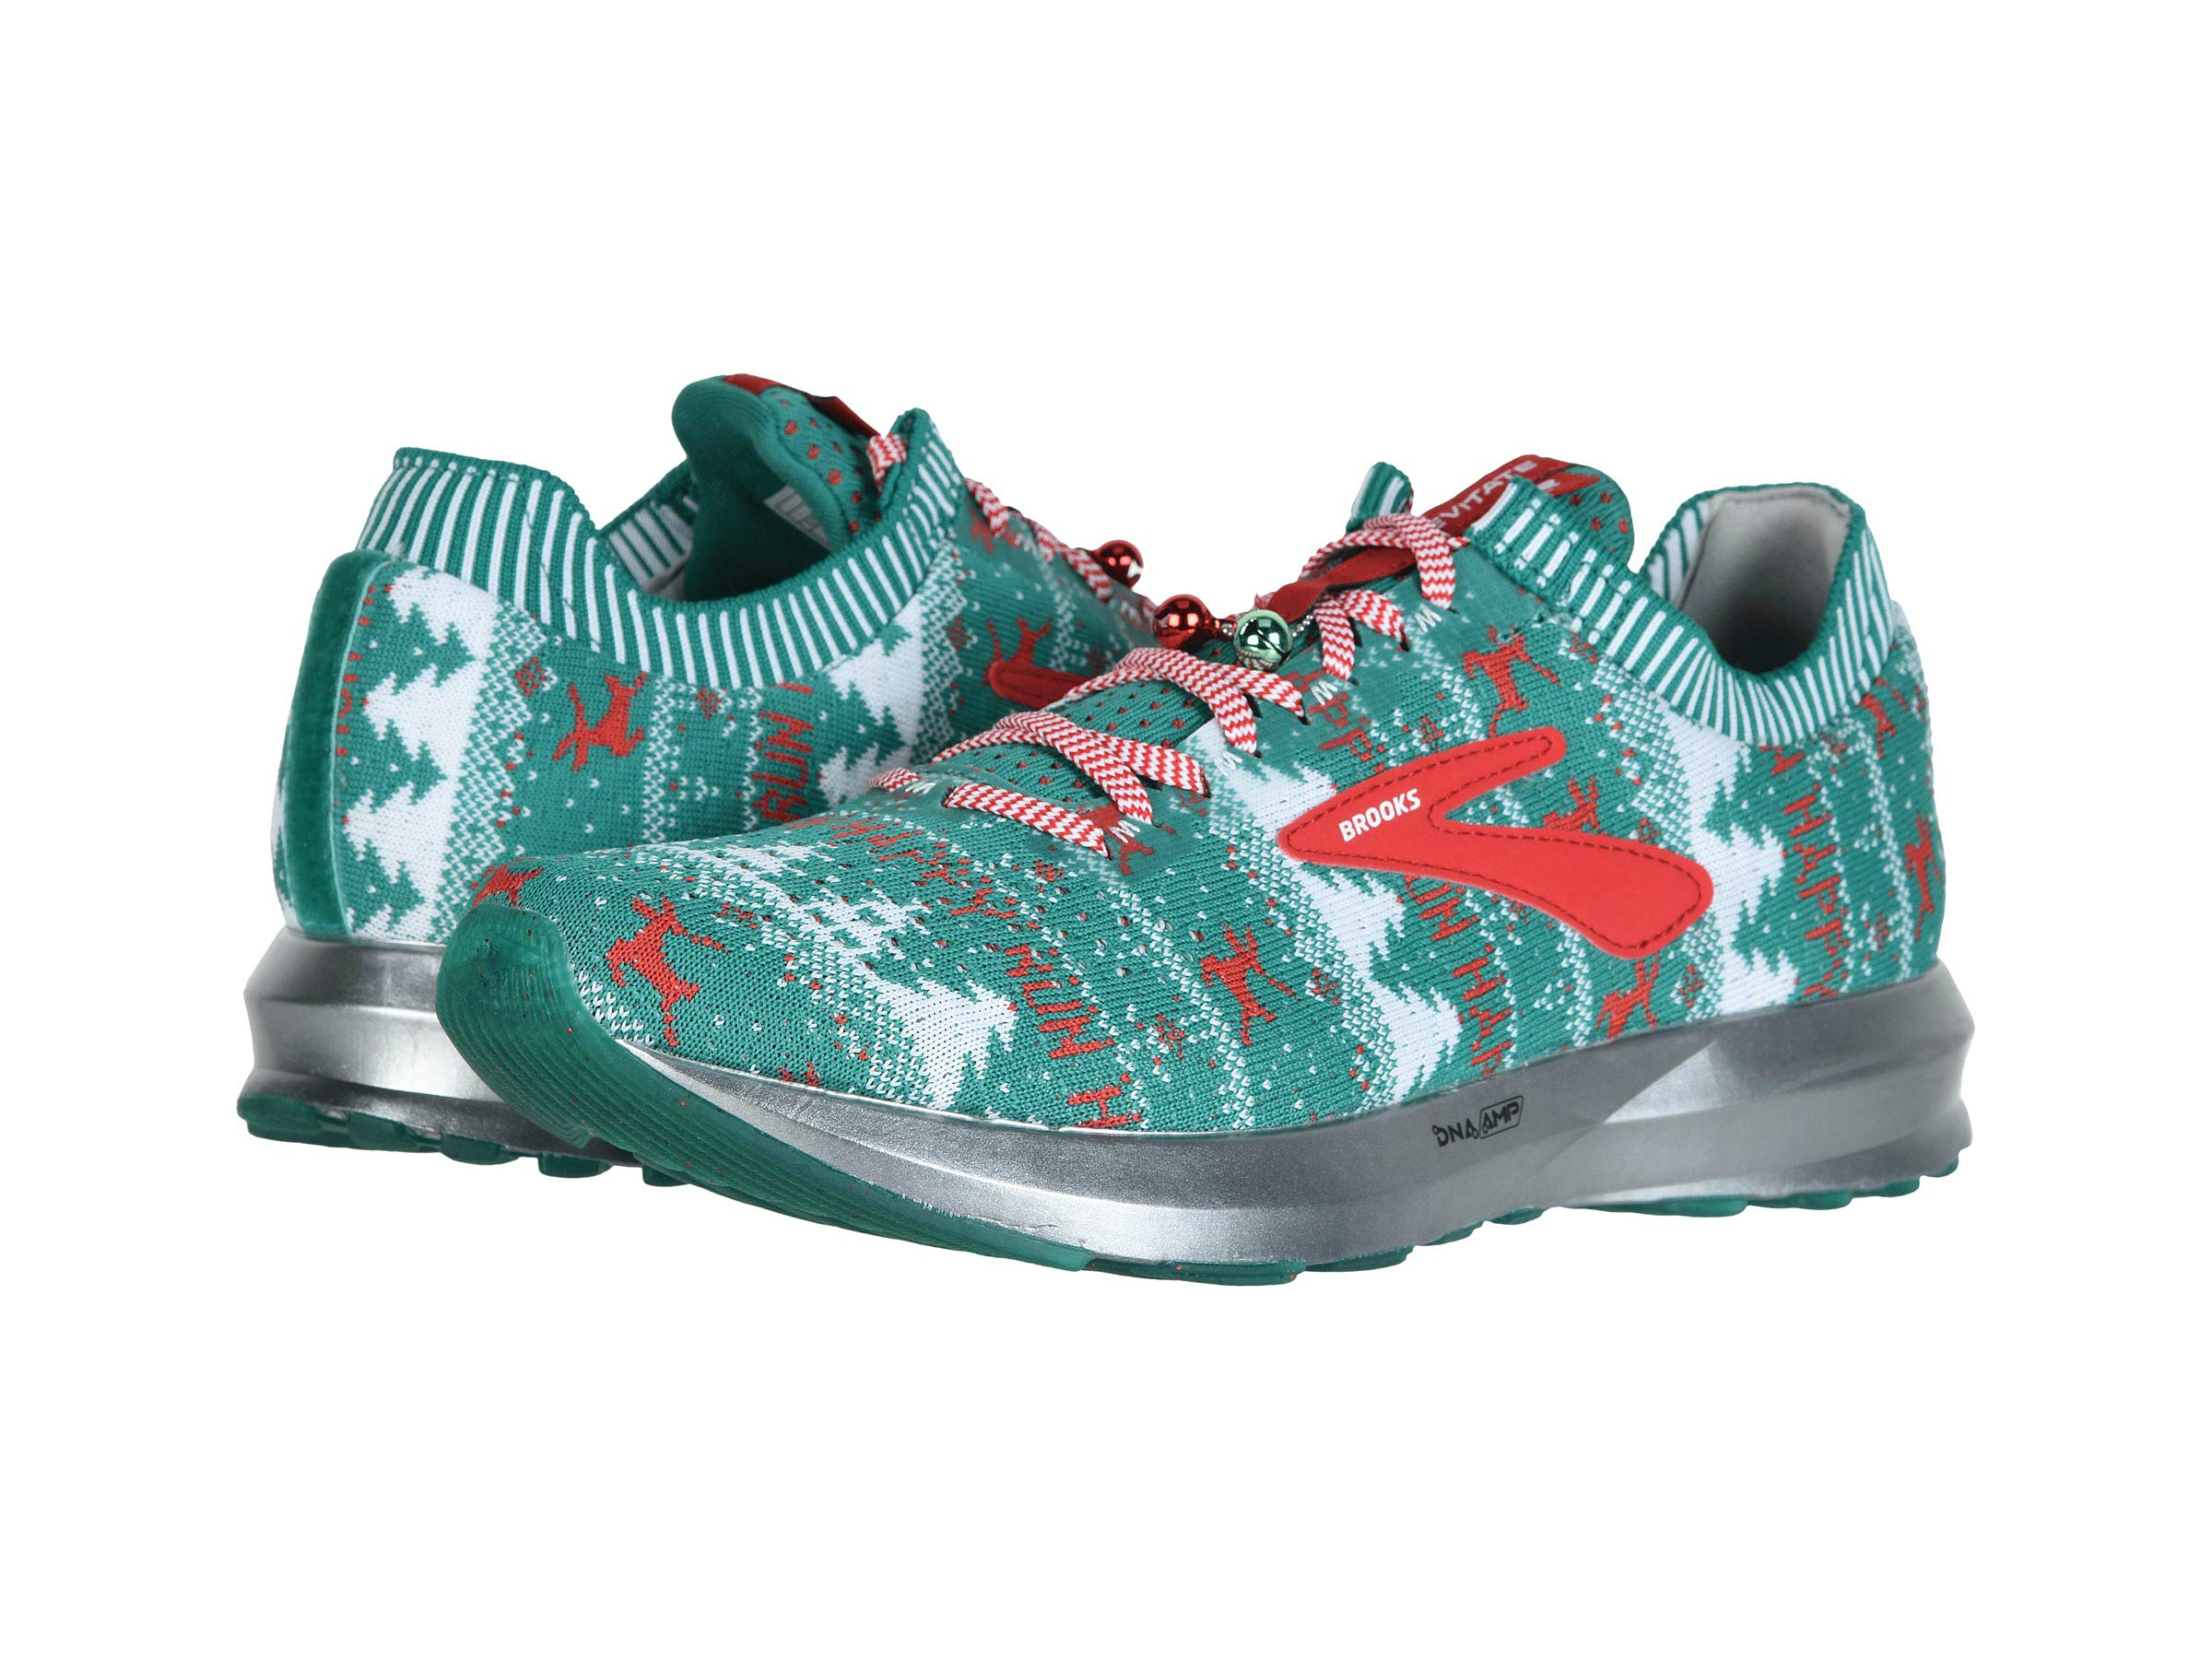 Best Ugly Christmas Shoes: Christmas